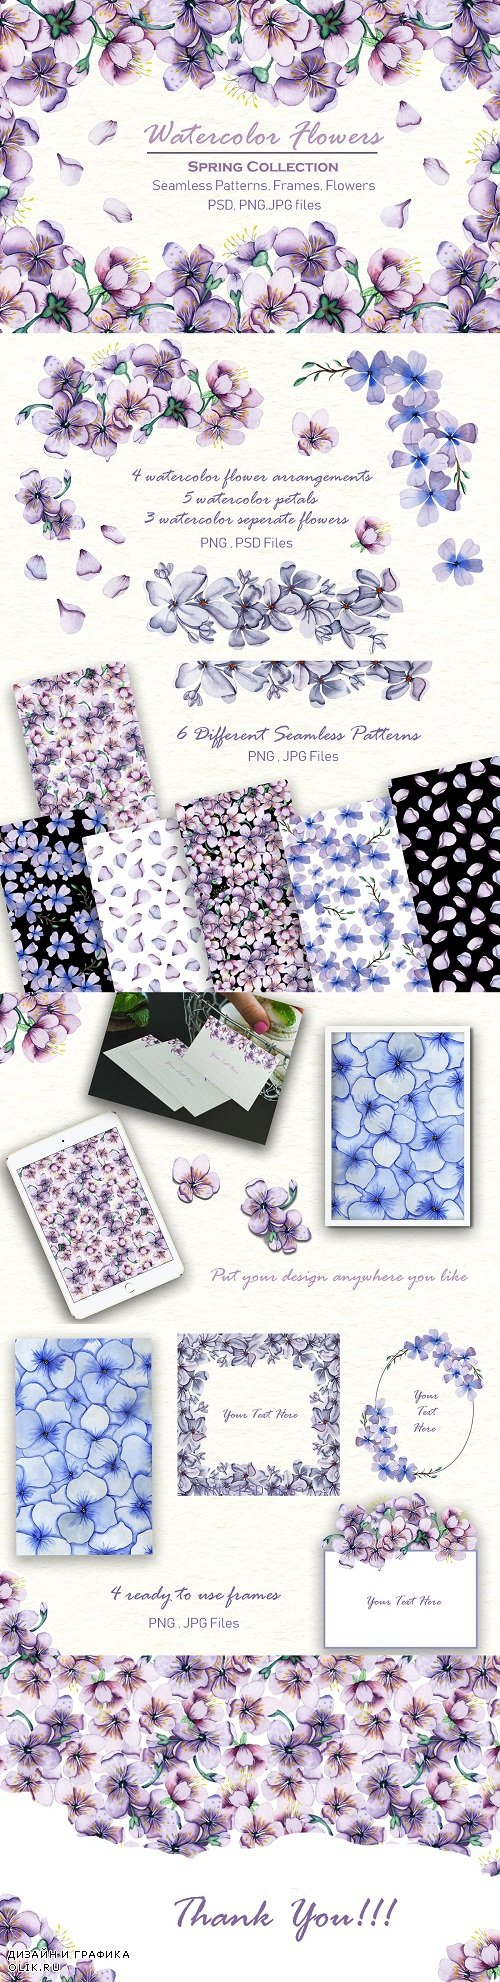 Watercolor Flowers Spring Collection - 3534155